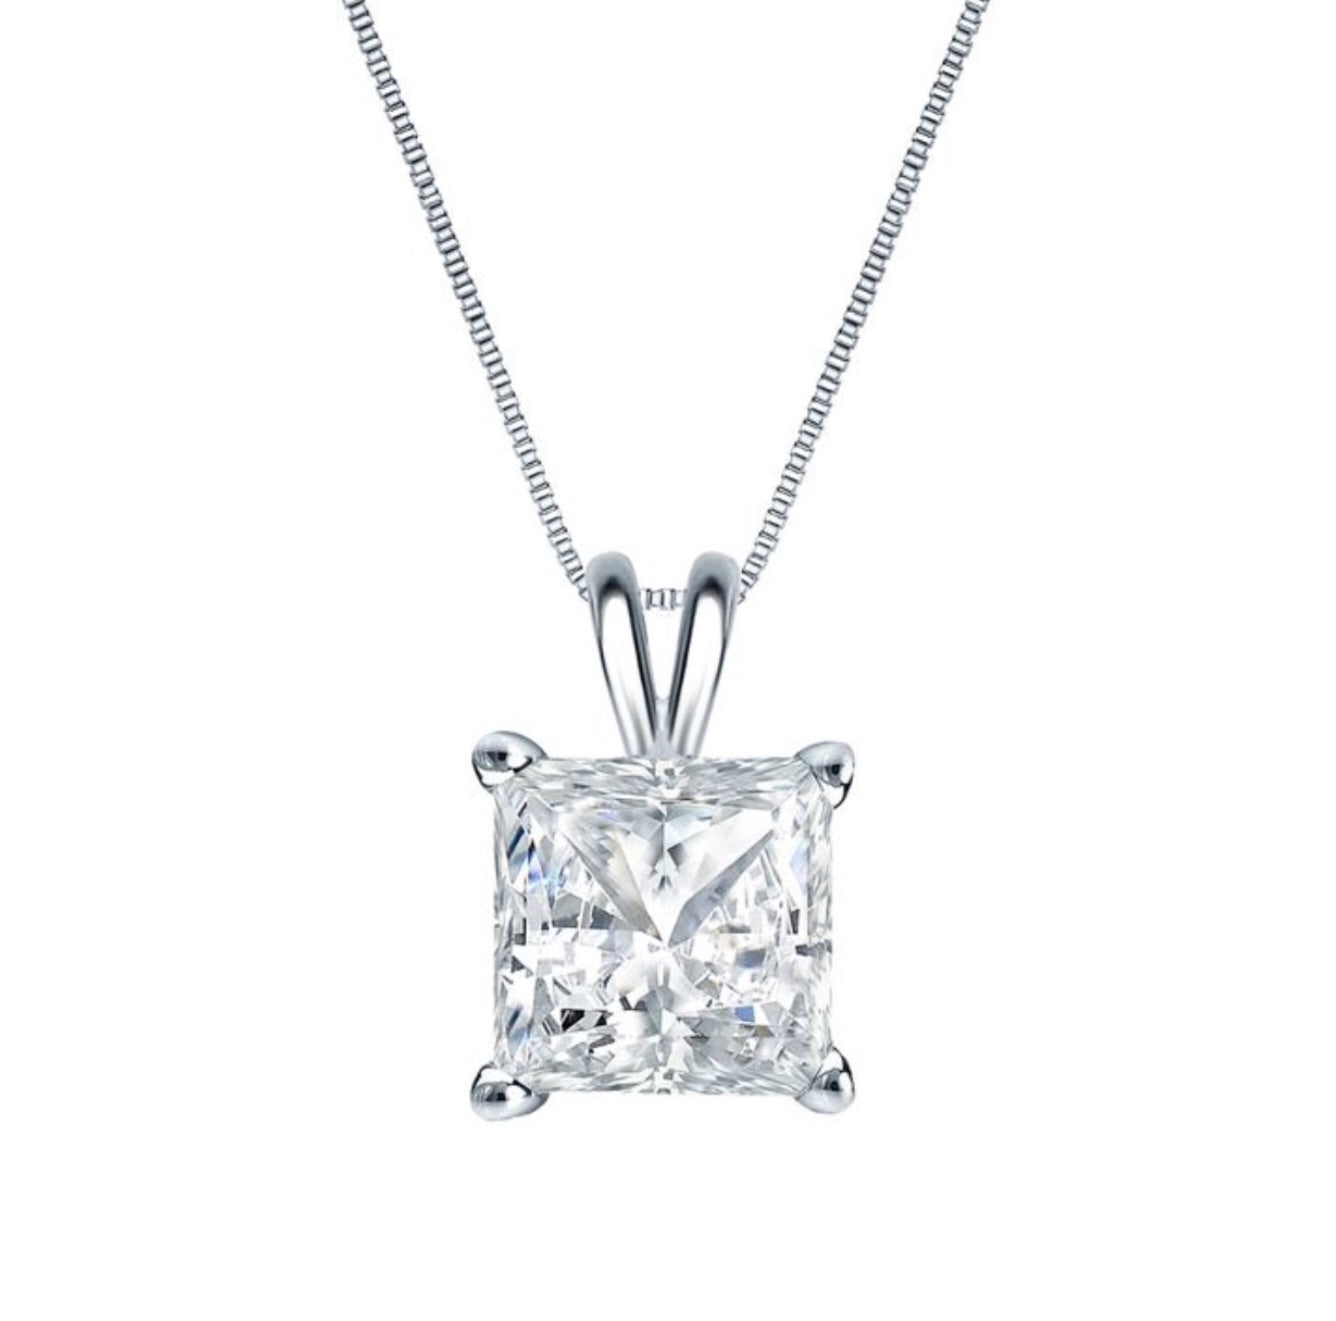 mv jared carat cut jar necklace white hover gold to en princess diamond zm jaredstore pendant zoom